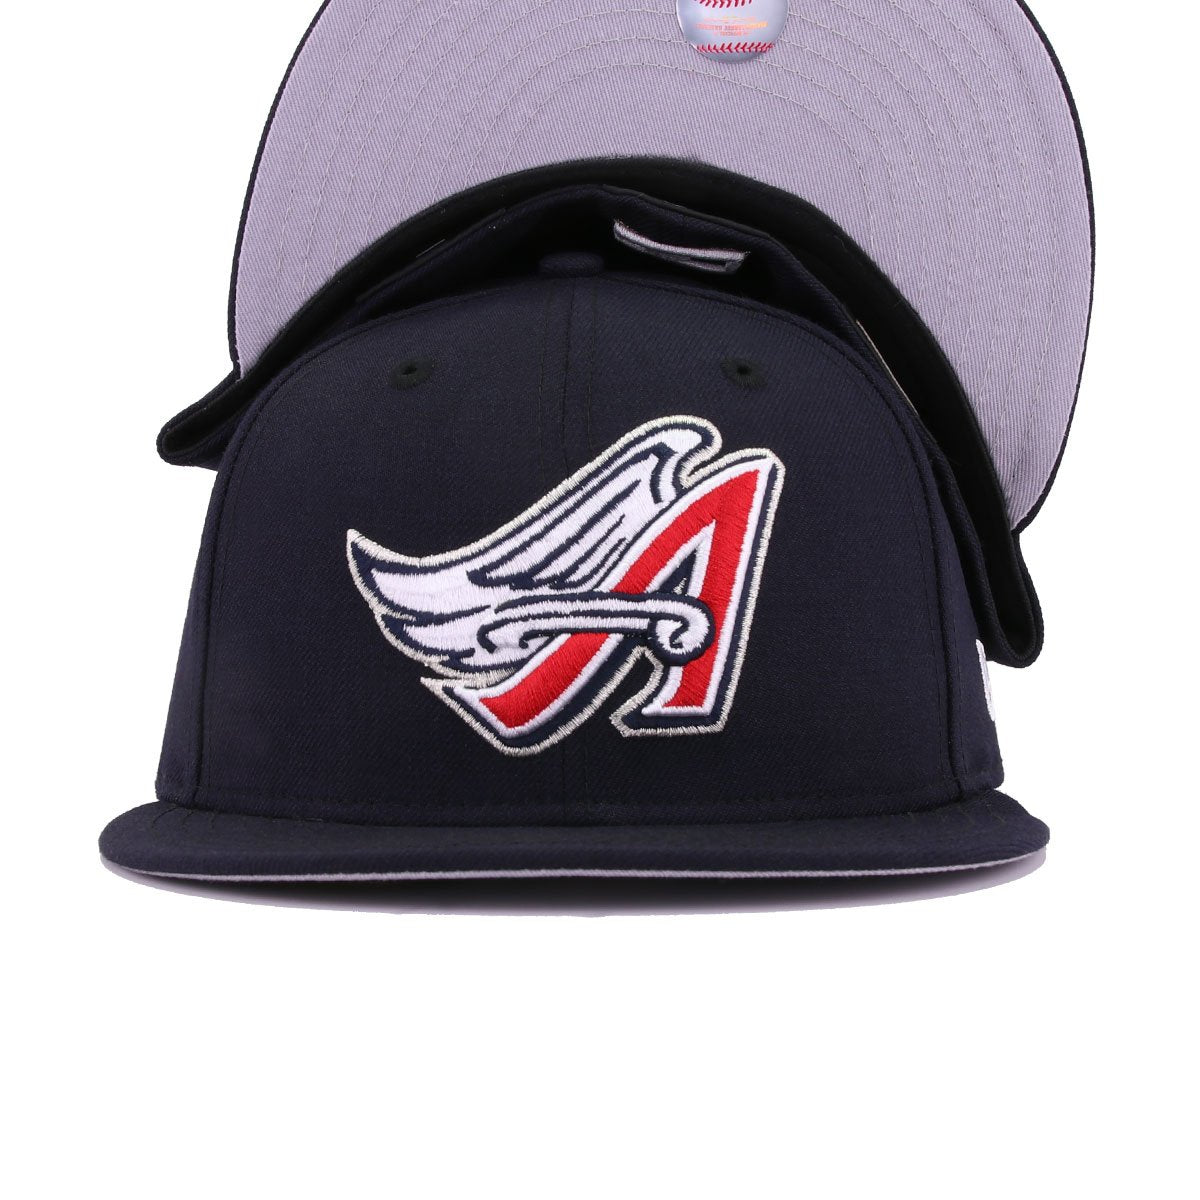 Los Angeles Angels Navy Metallic Silver Cooperstown New Era 59Fifty Fitted